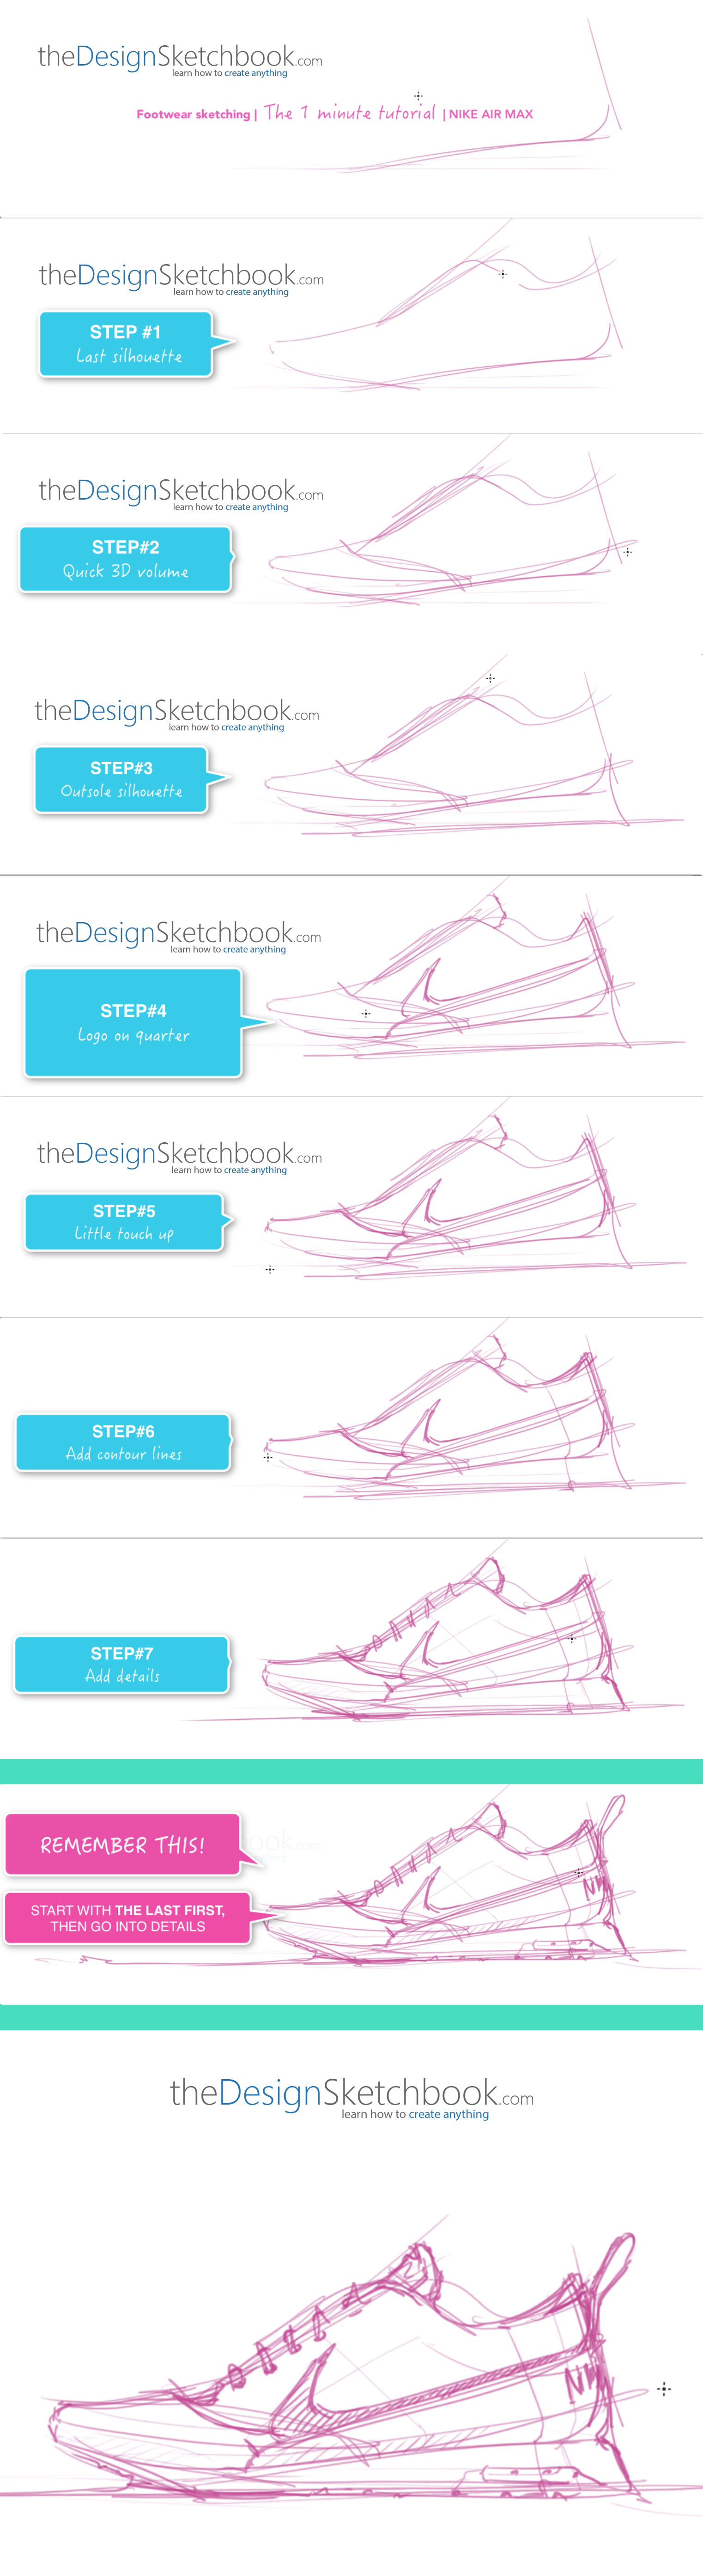 How to draw the Nike Air Max , 1min sketching tutorial